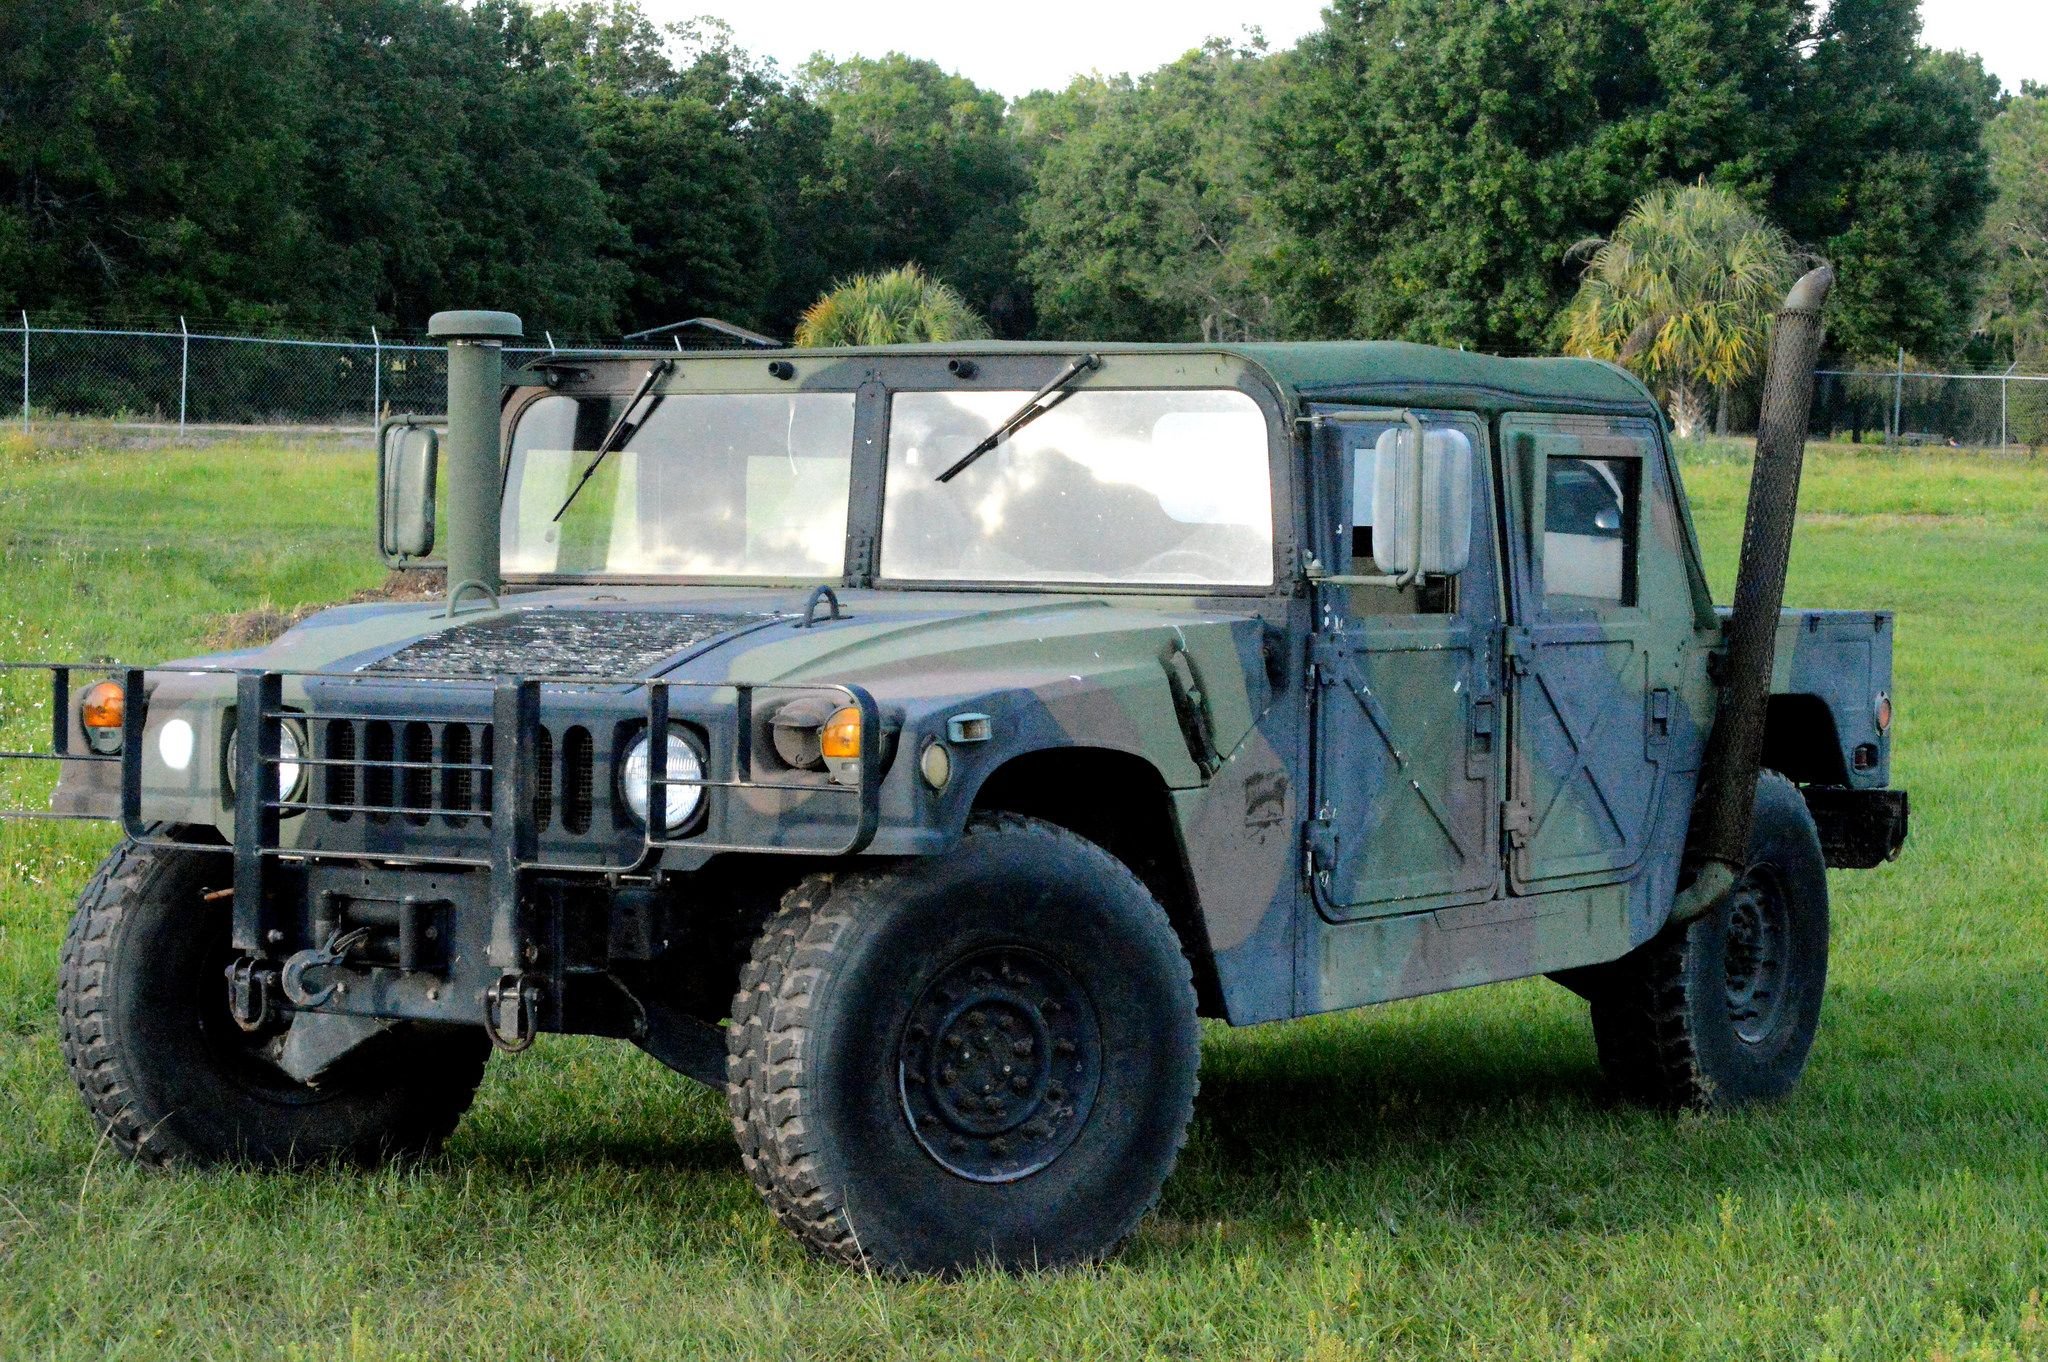 Buy a Military Grade Humvee and Dominate Your Local Trails